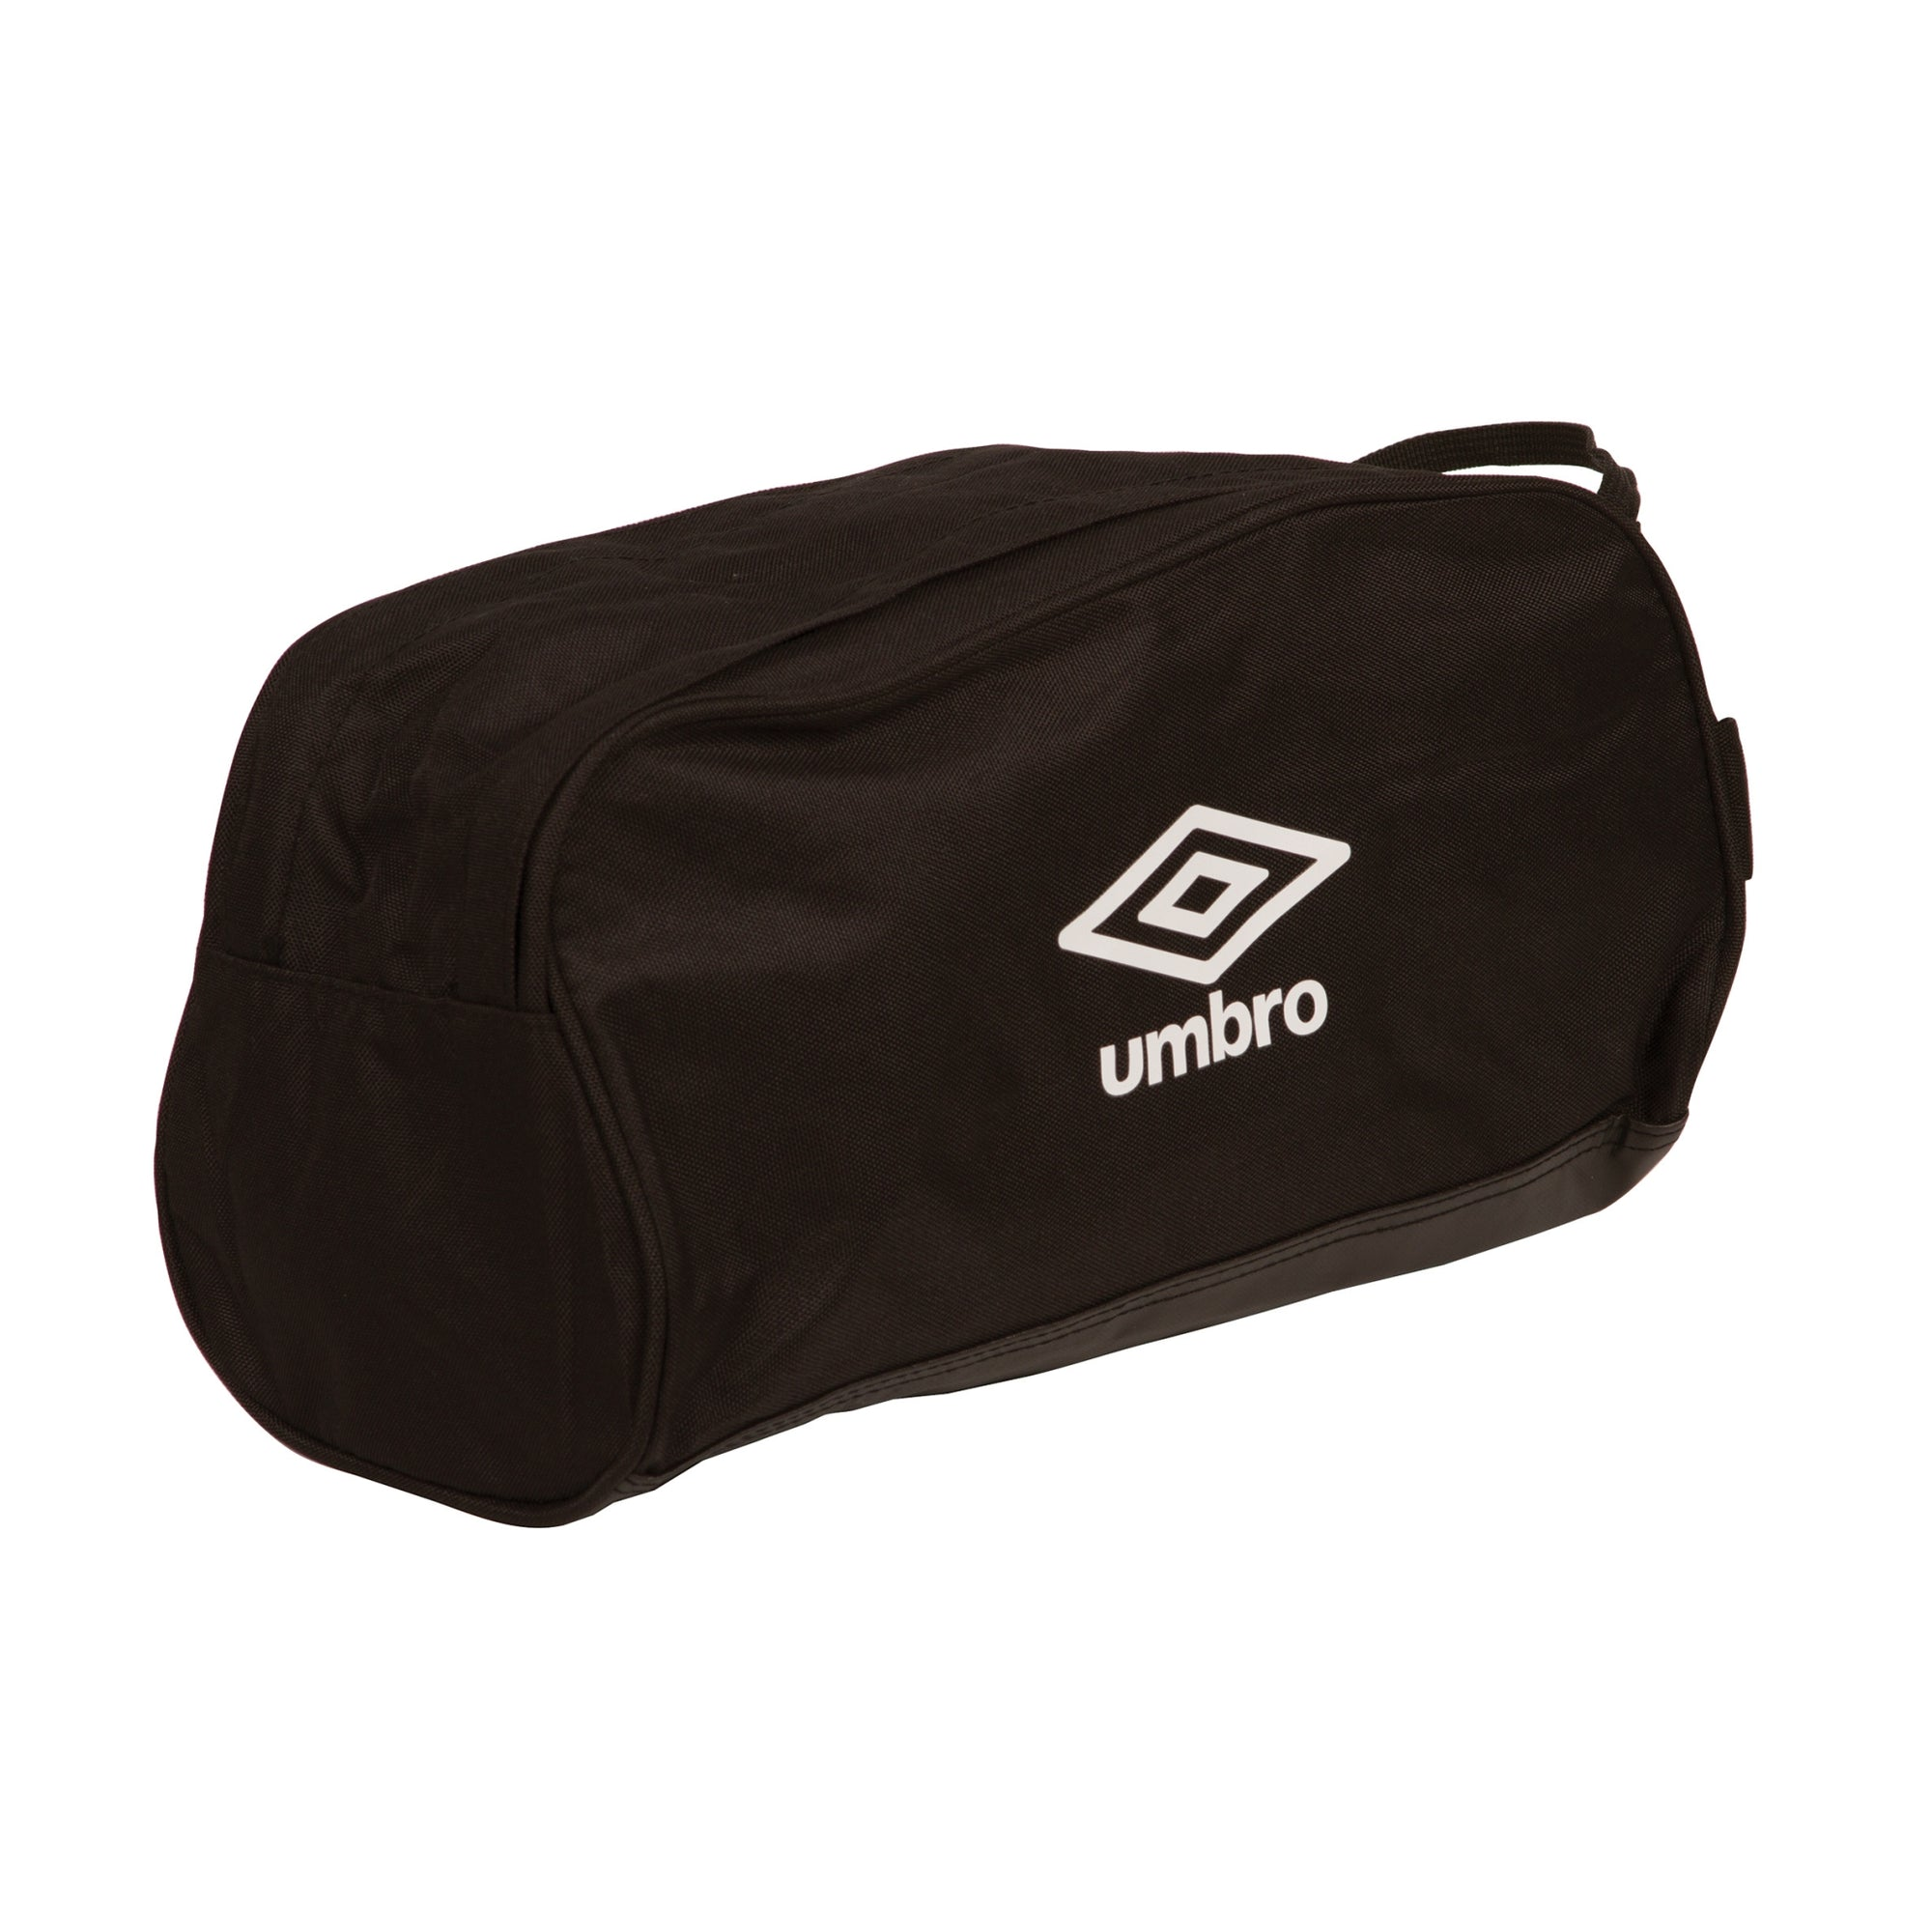 Umbro Bootbag - Black